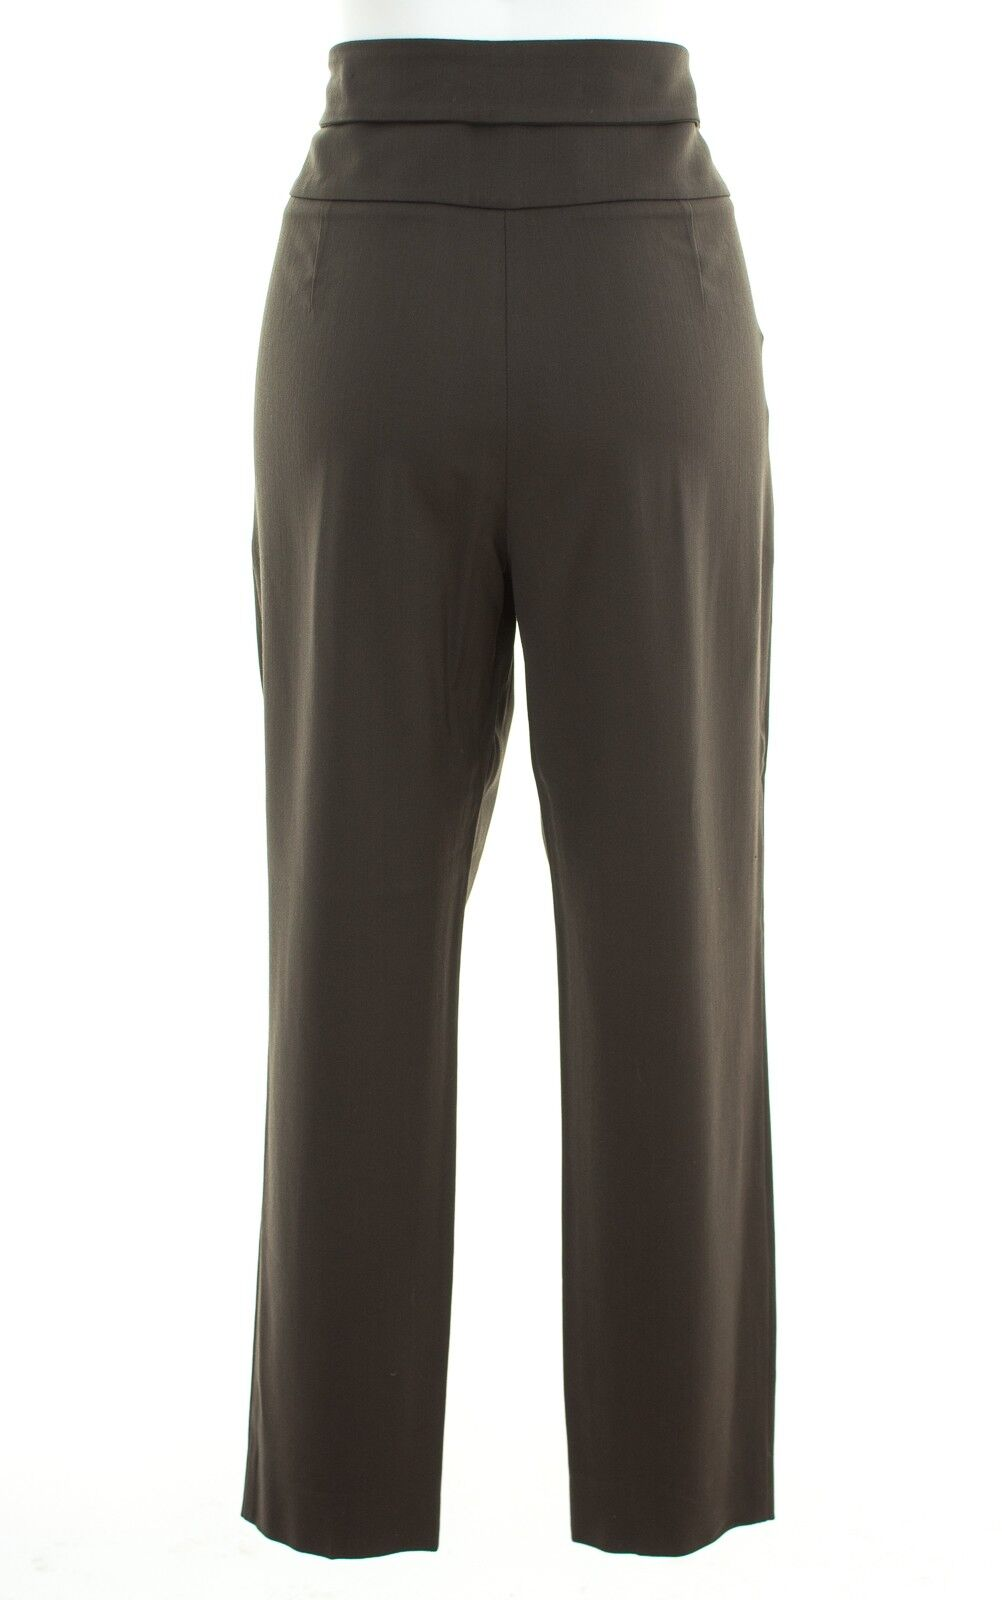 Blk 4059805427877 Adidas Trousers Track Trousers Sst 44